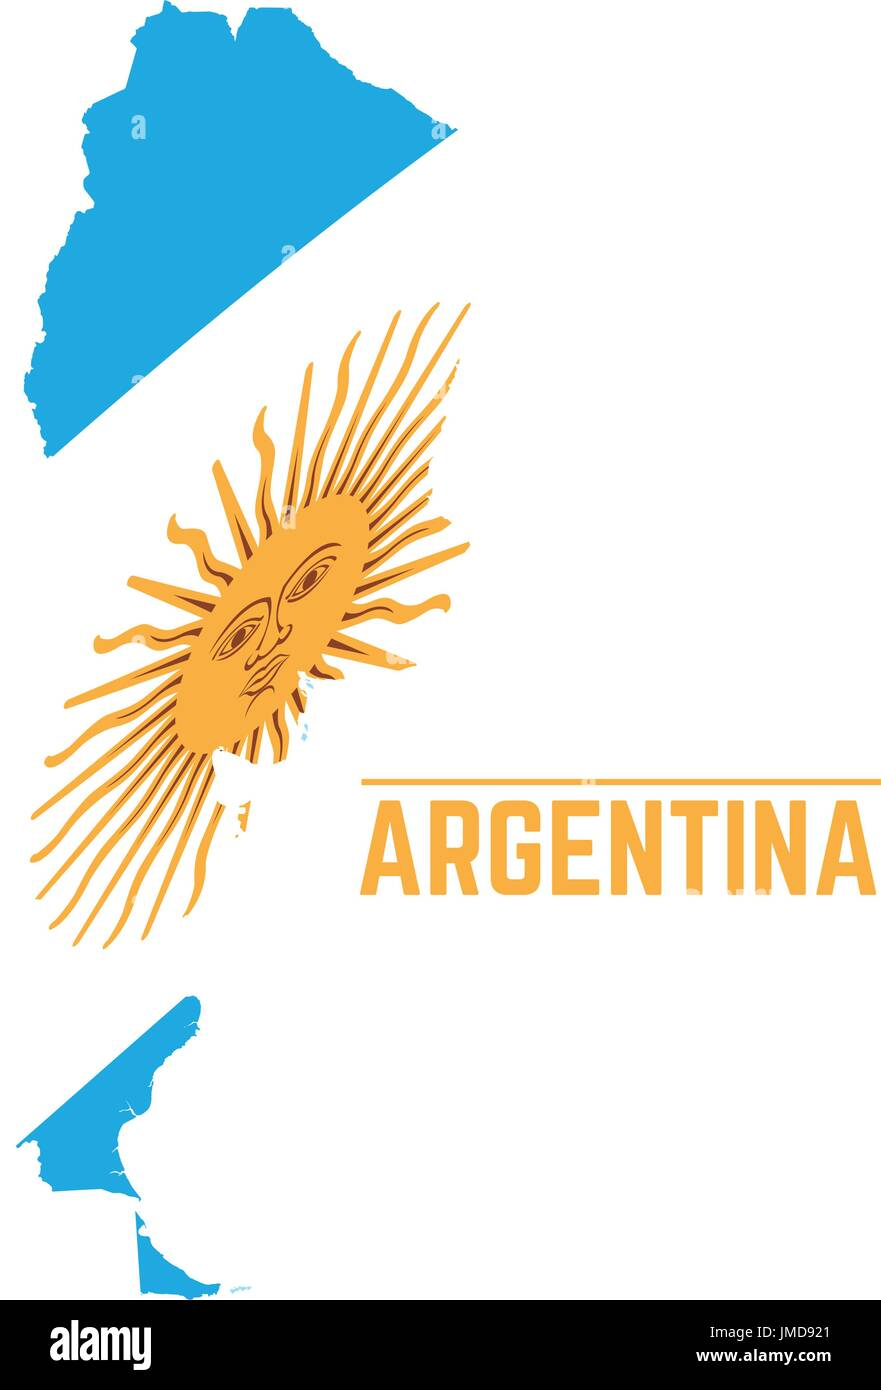 Argentina Country Flag Map Shape Stock Photos Argentina Country - Argentina map shape